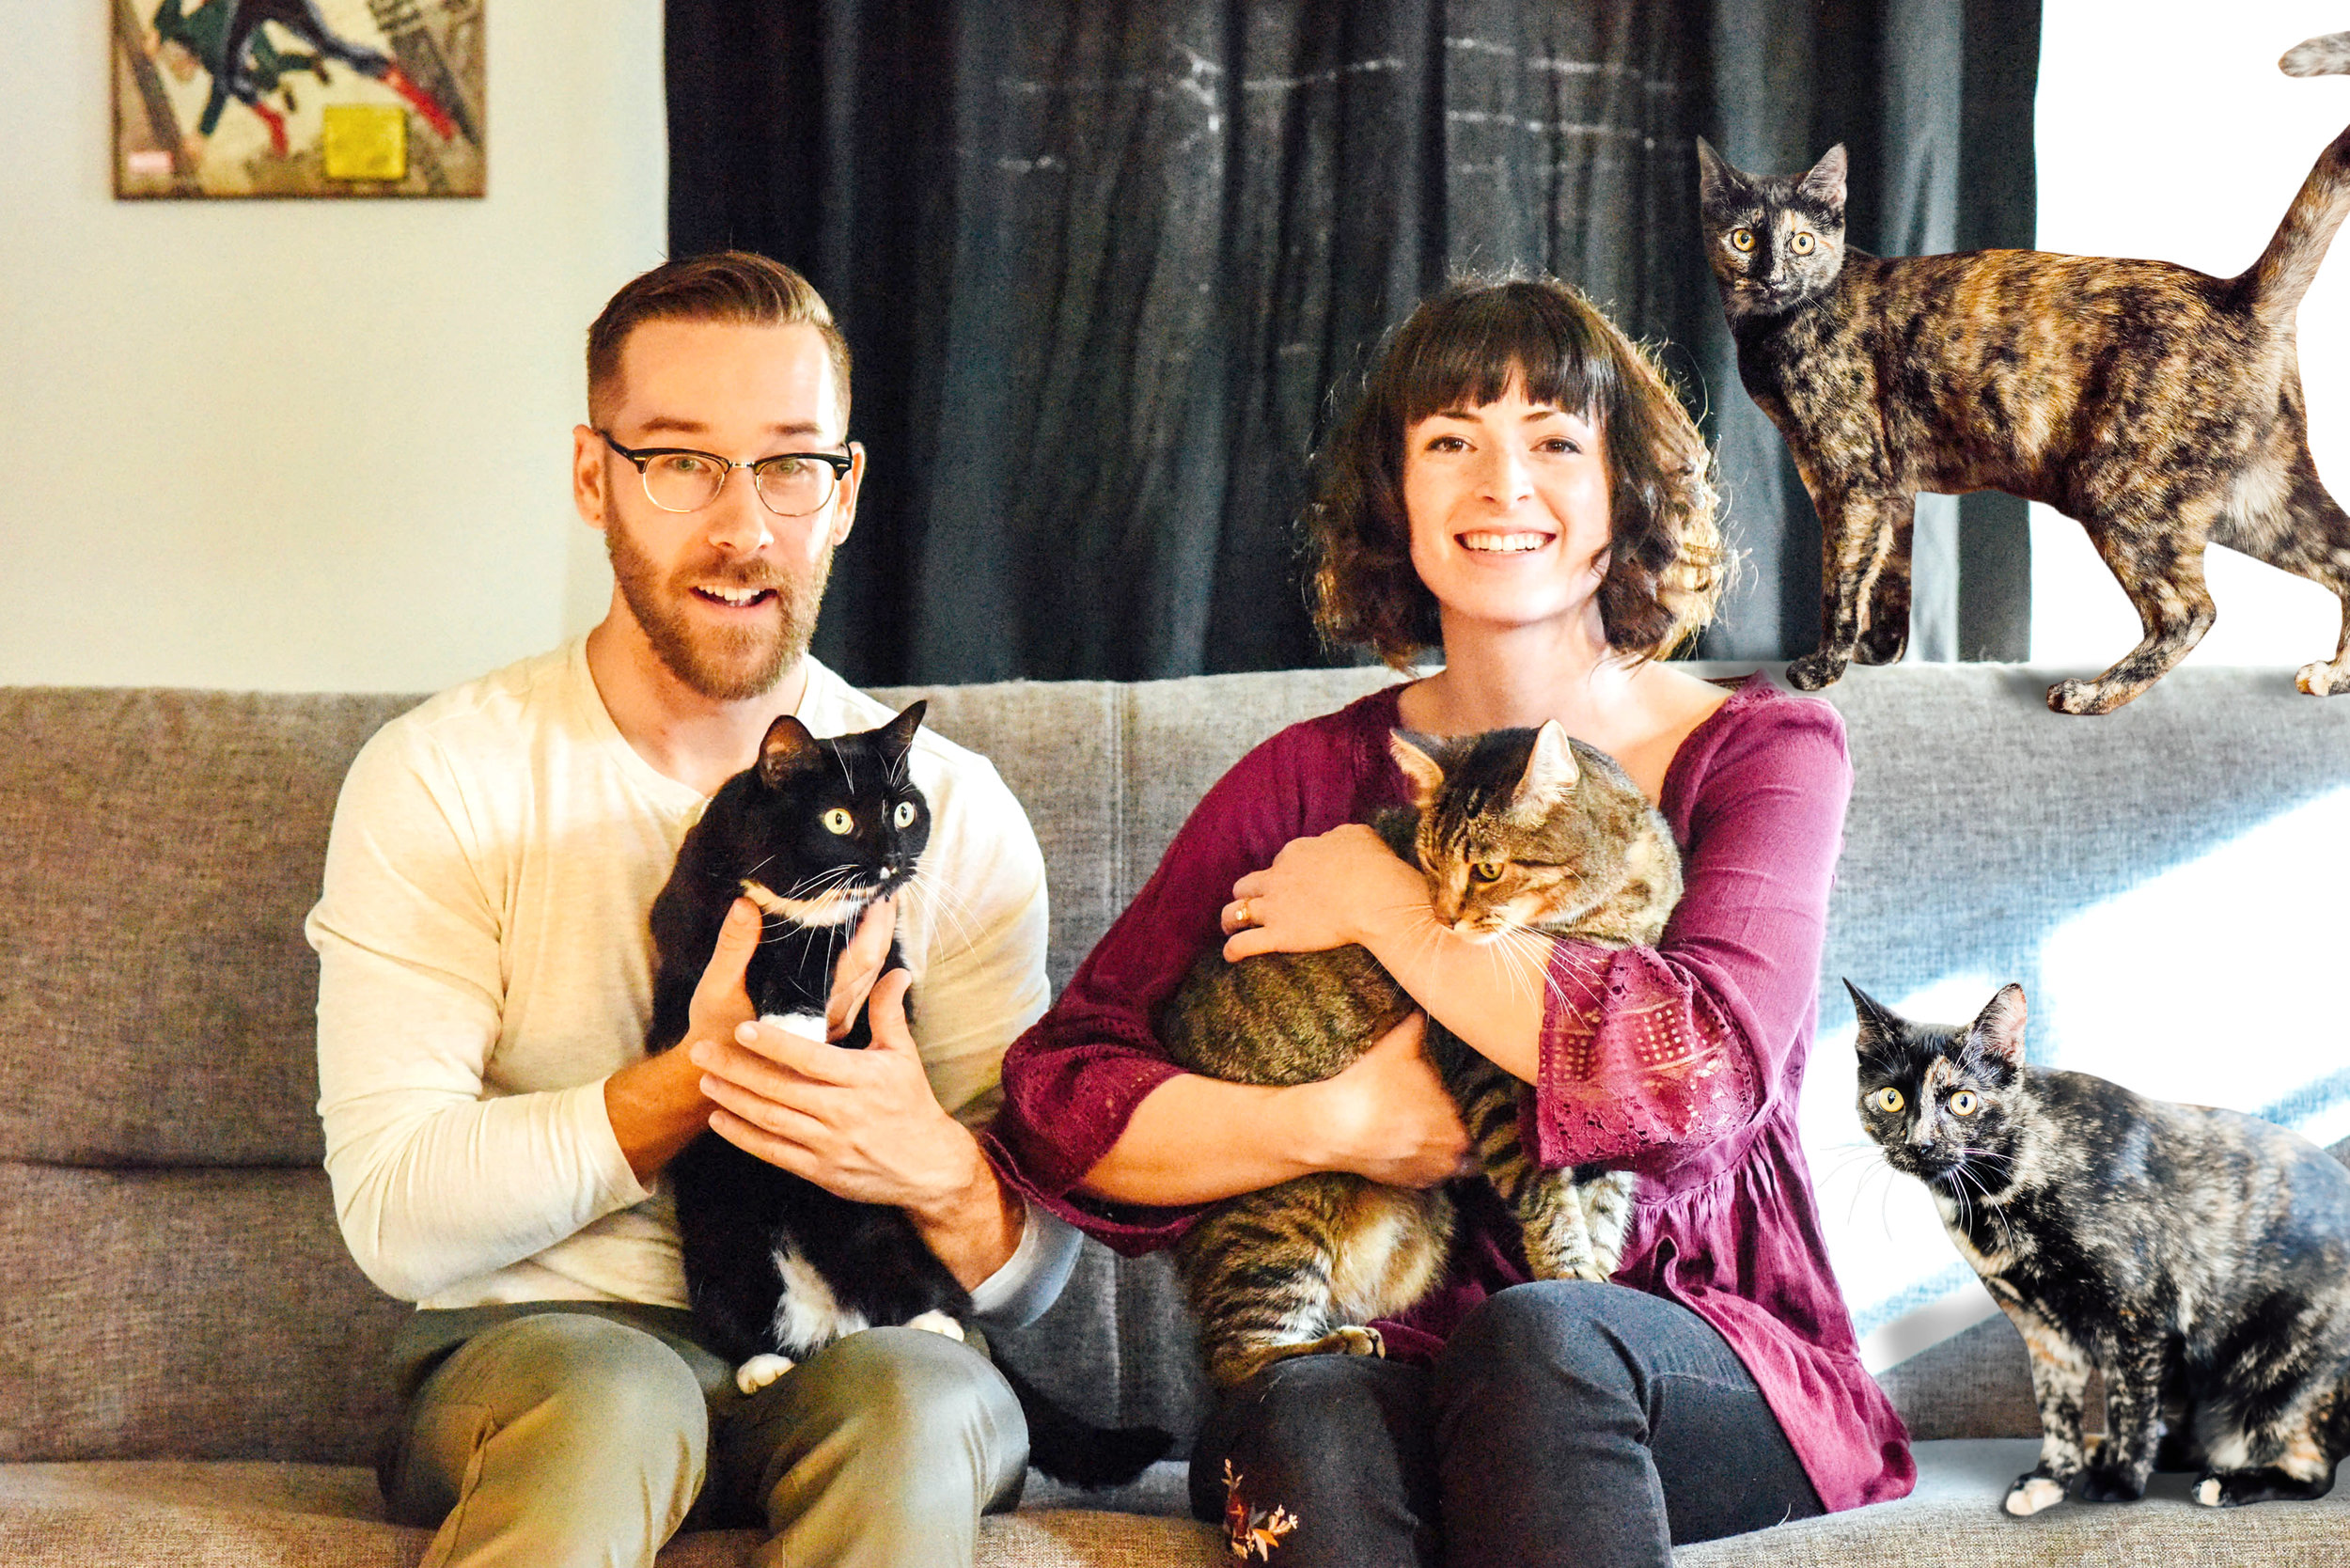 richmond-rva-cat-parents-engagement-portrait.jpg